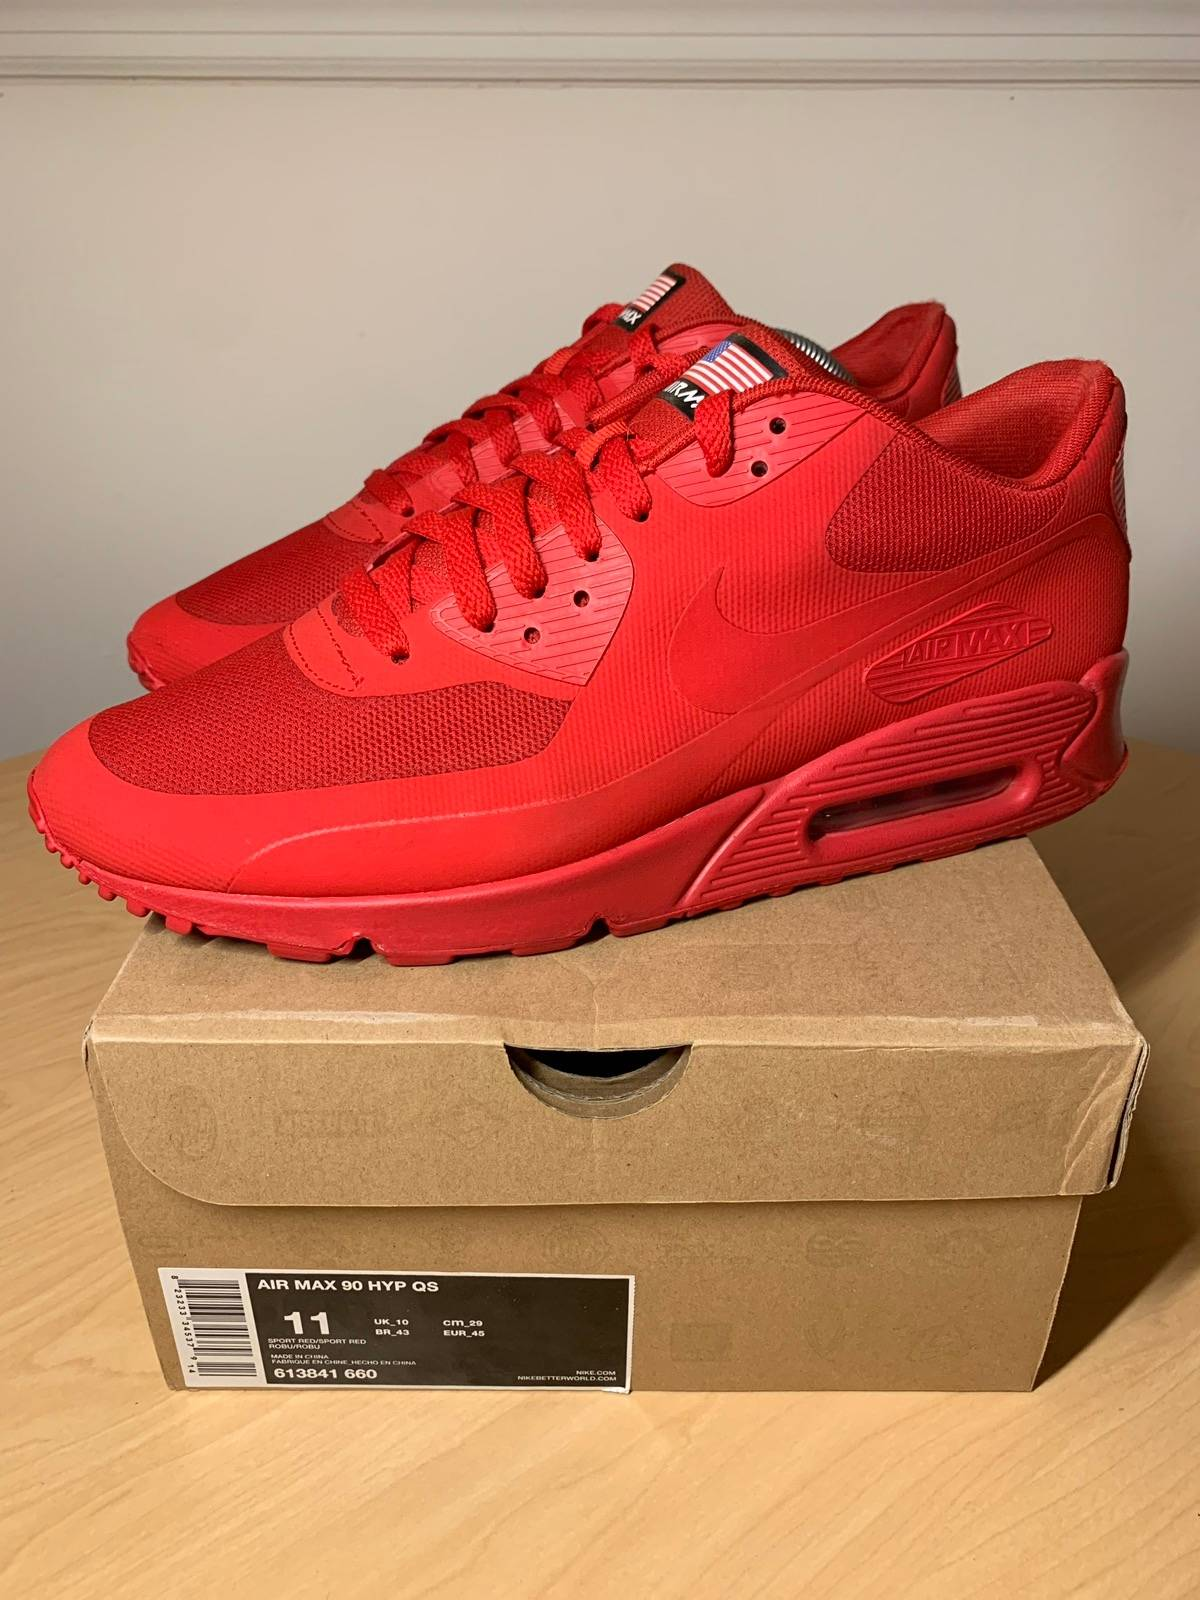 Nike Air Max 90 Hyperfuse Independence Day Red Size 11 $224